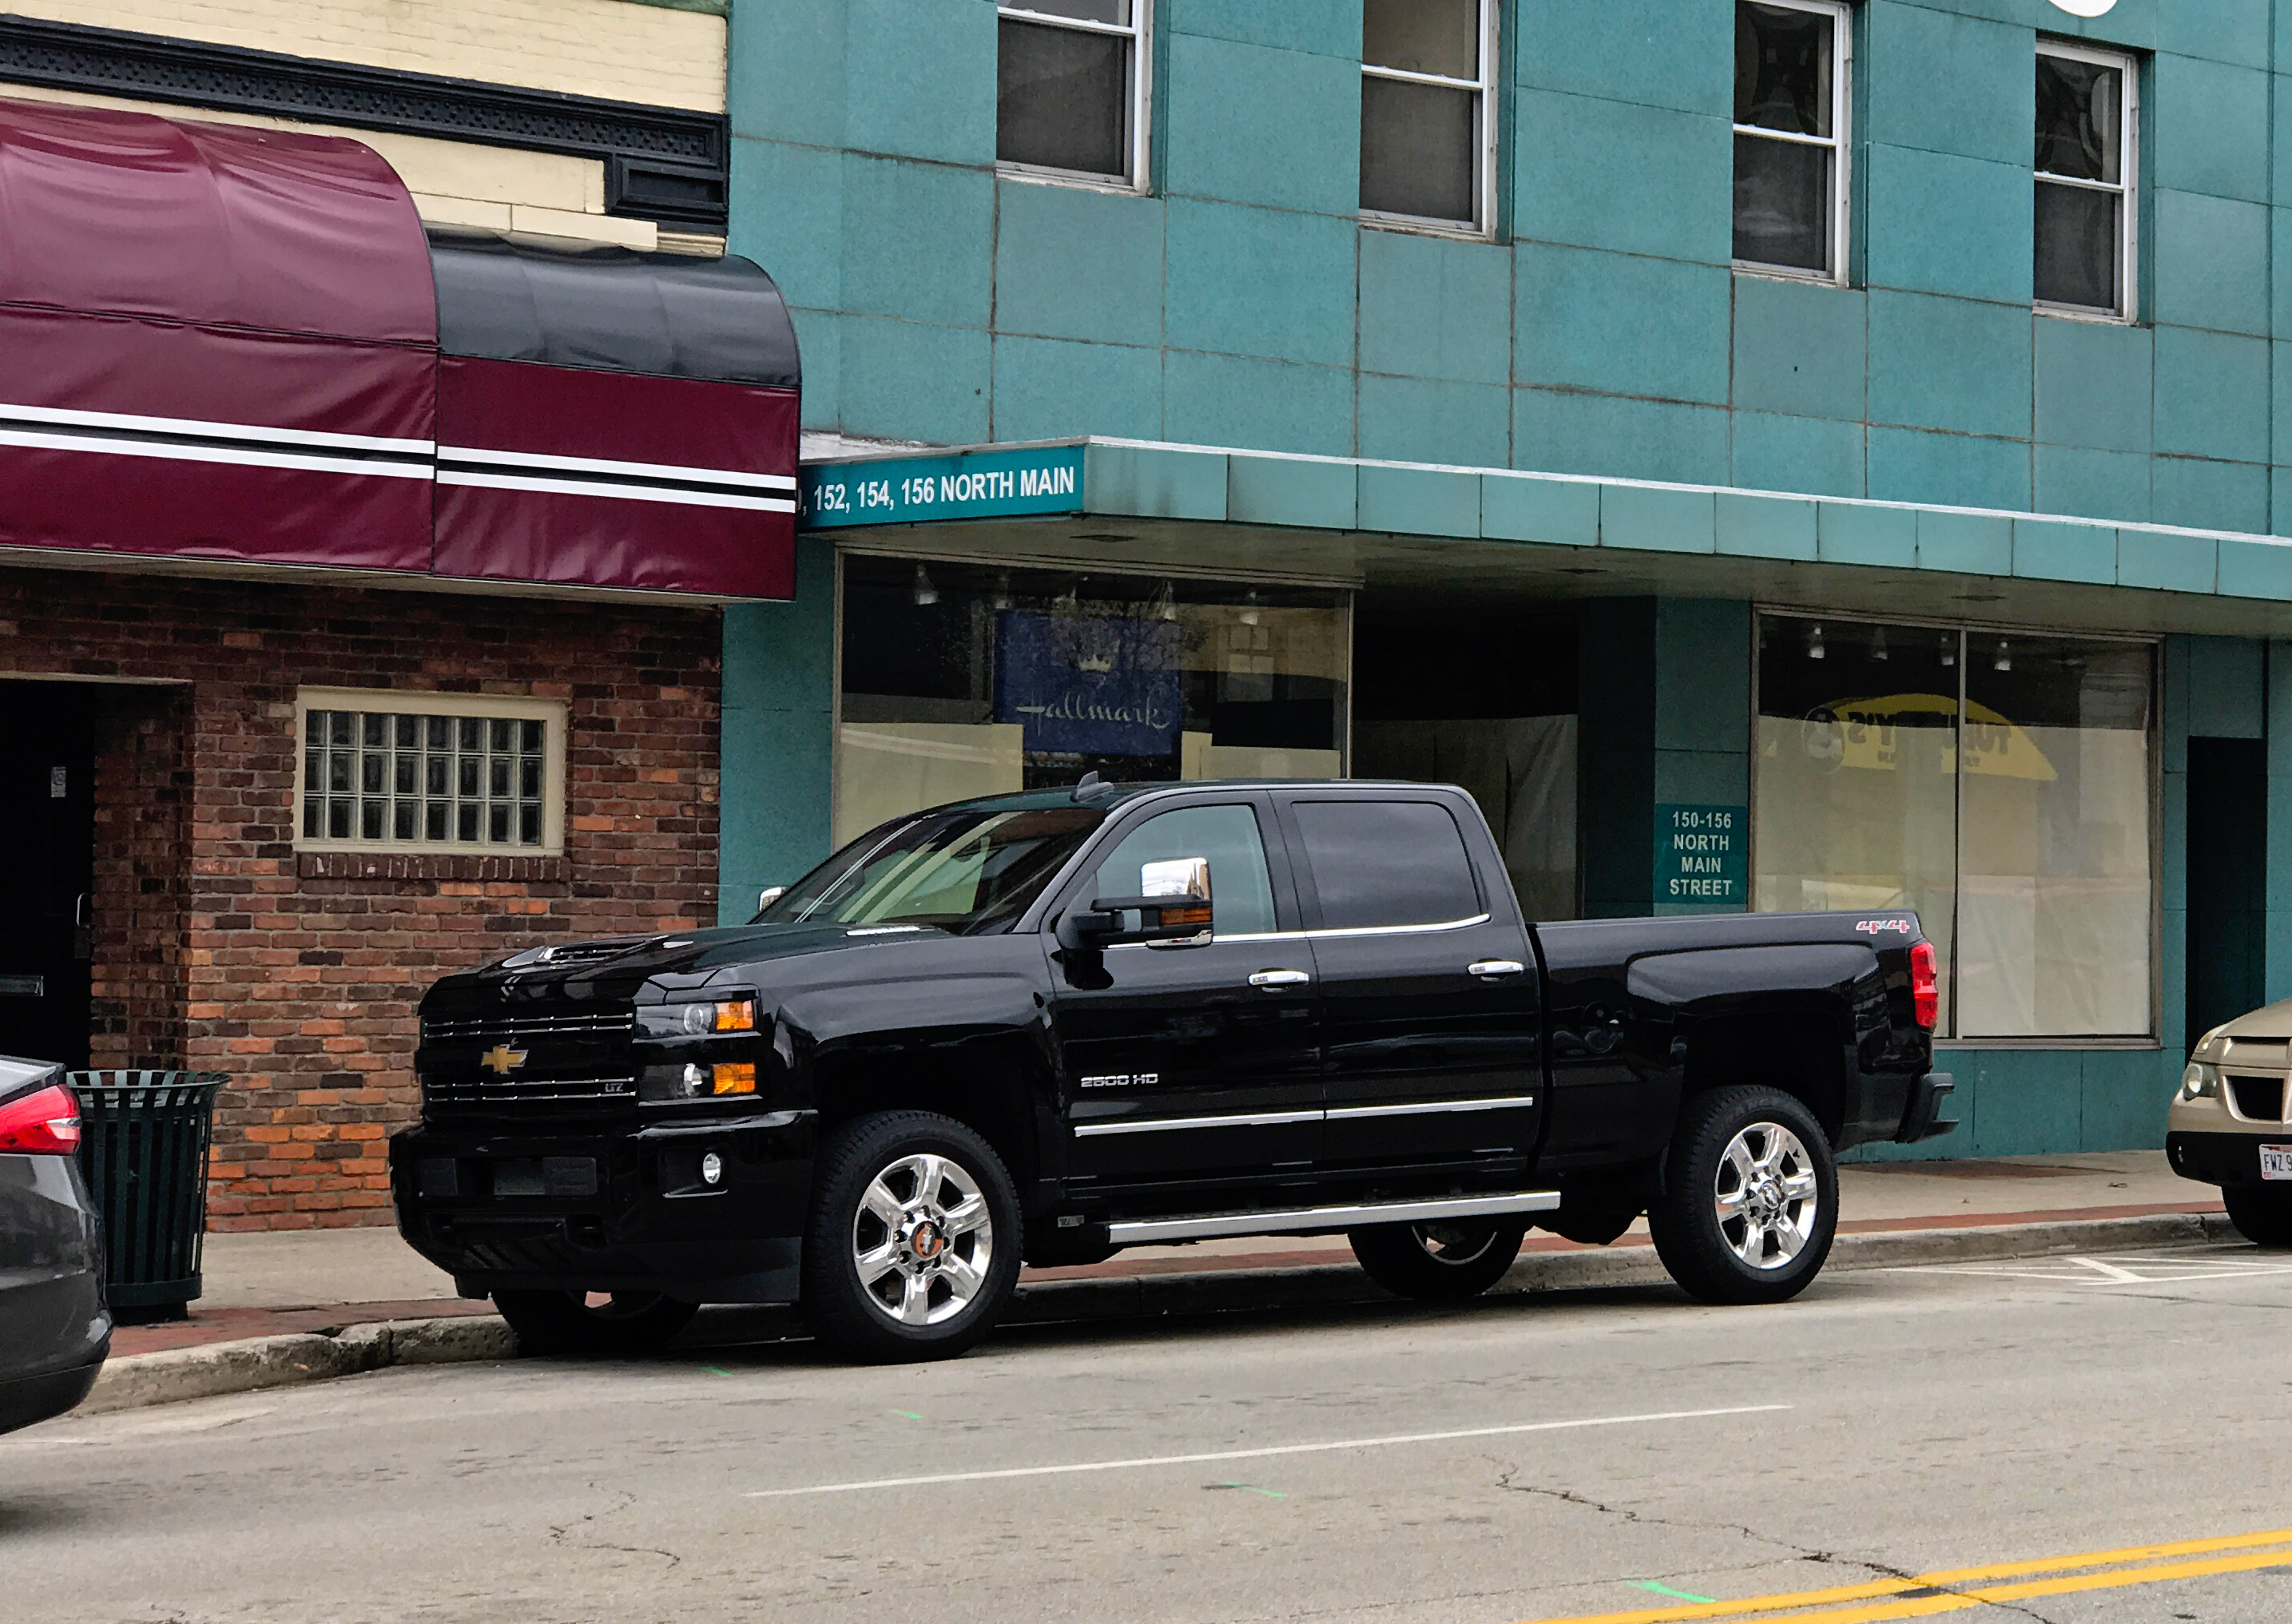 Chevy 2500 Towing Capacity >> 2017 Chevy Silverado 2500HD Review: Duramax Diesel